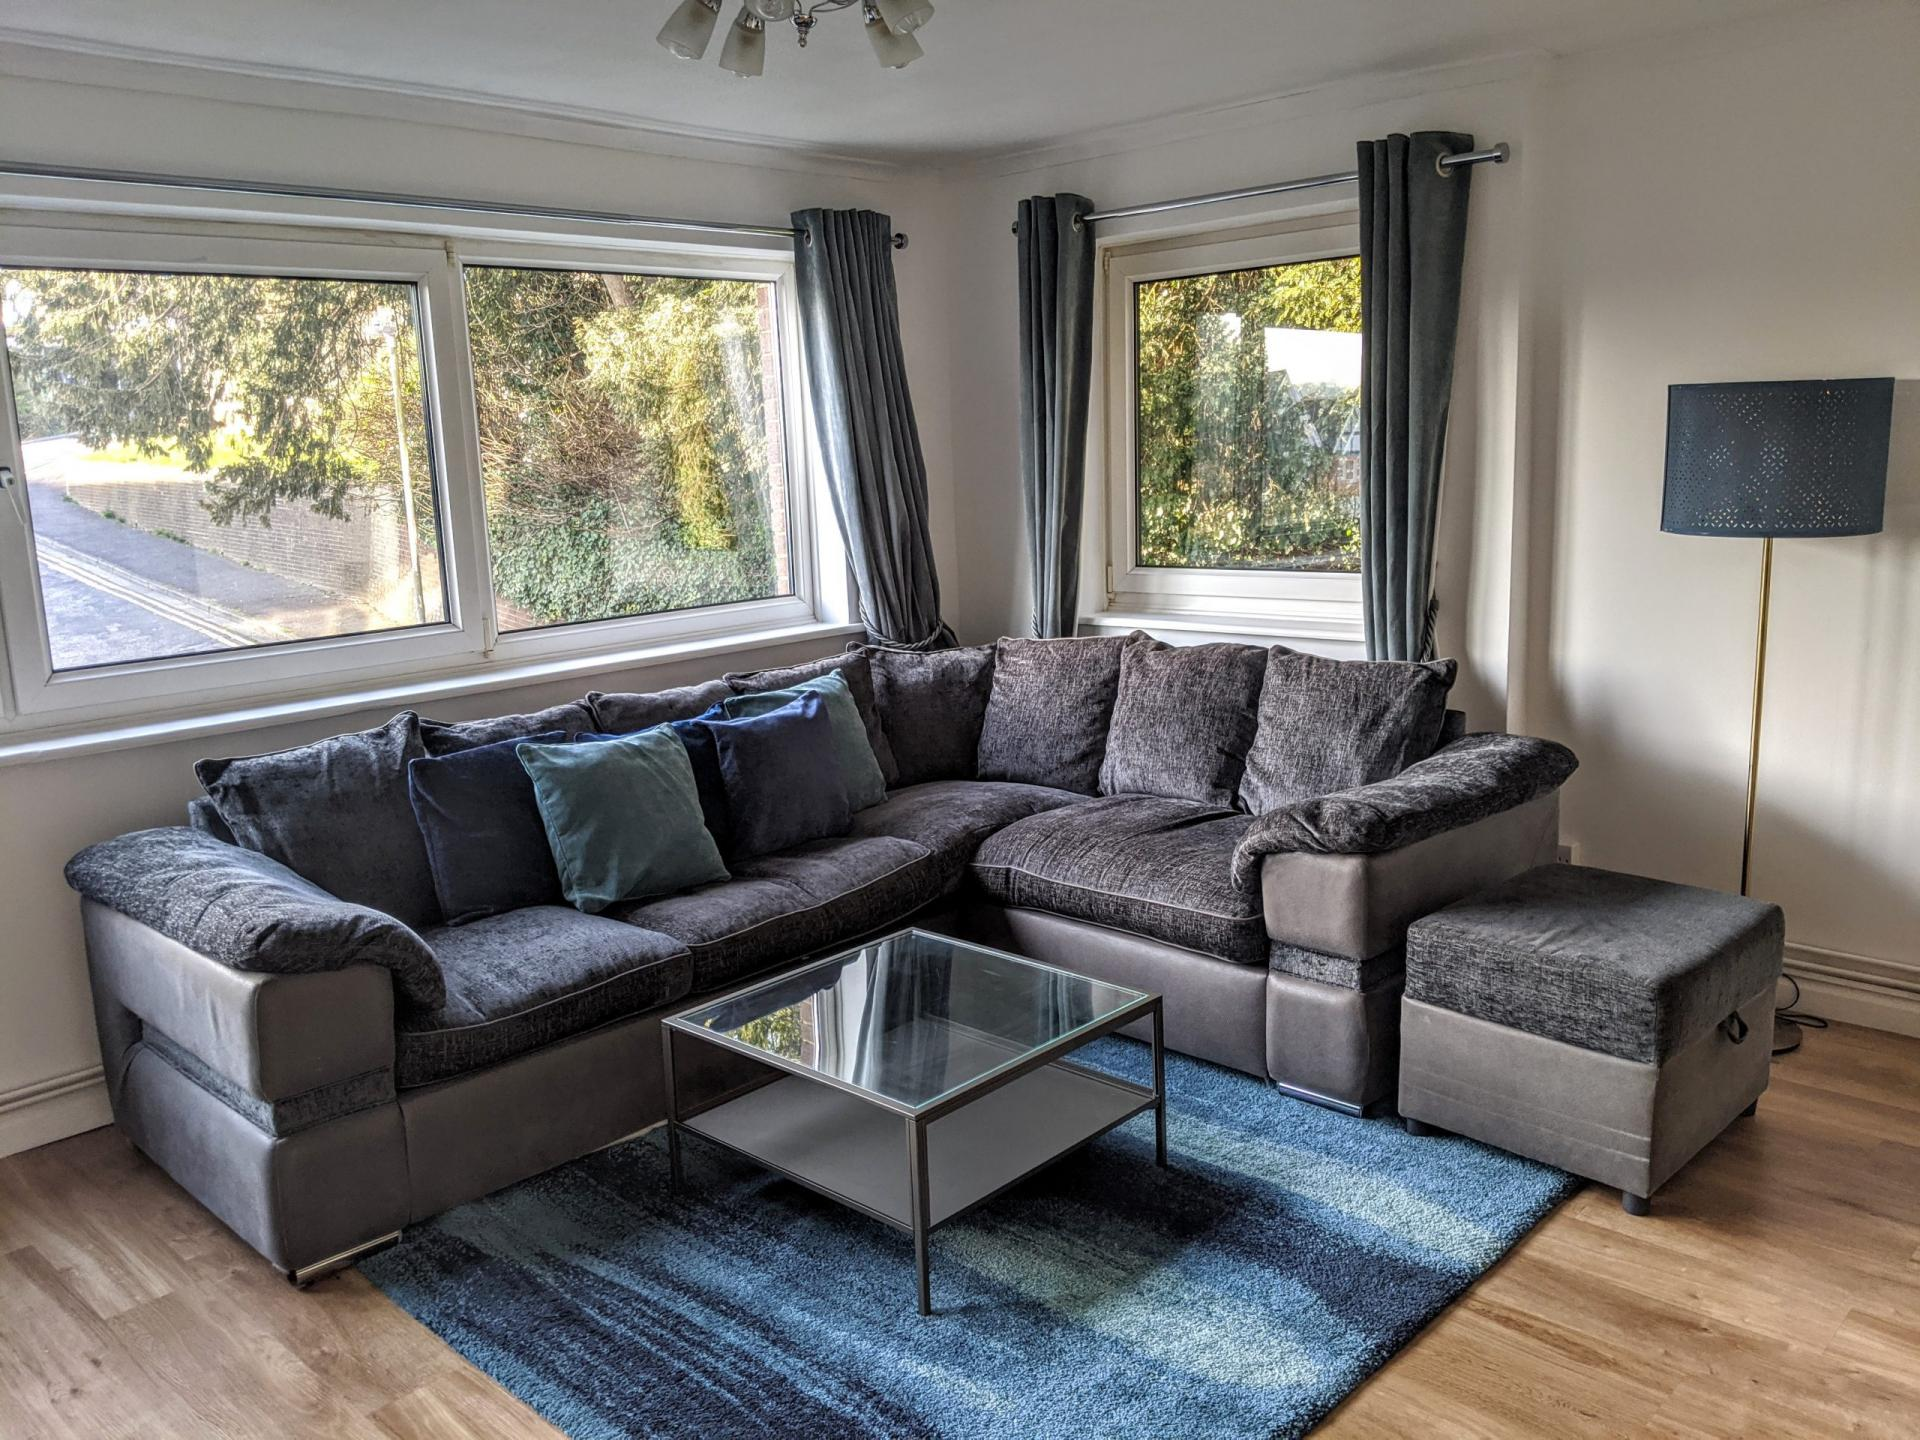 Sofa at Benjamin House Apartment, Centre, High Wycombe